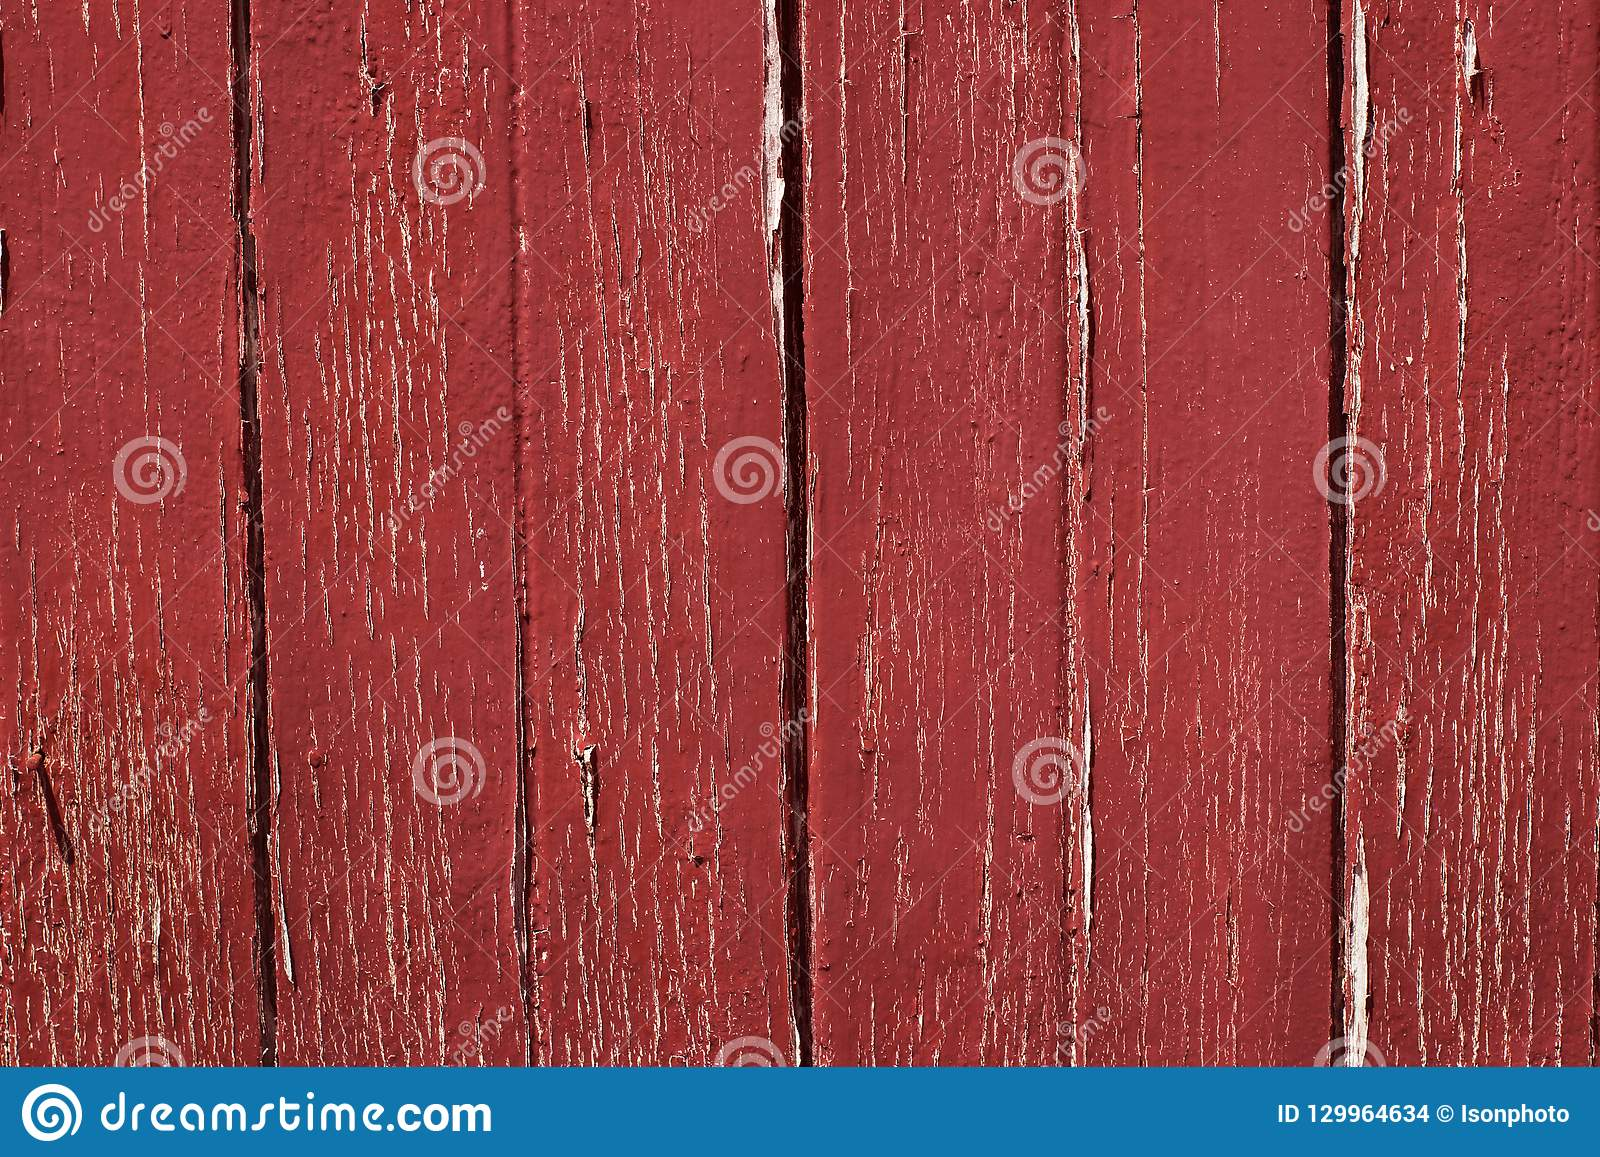 Red rustic background